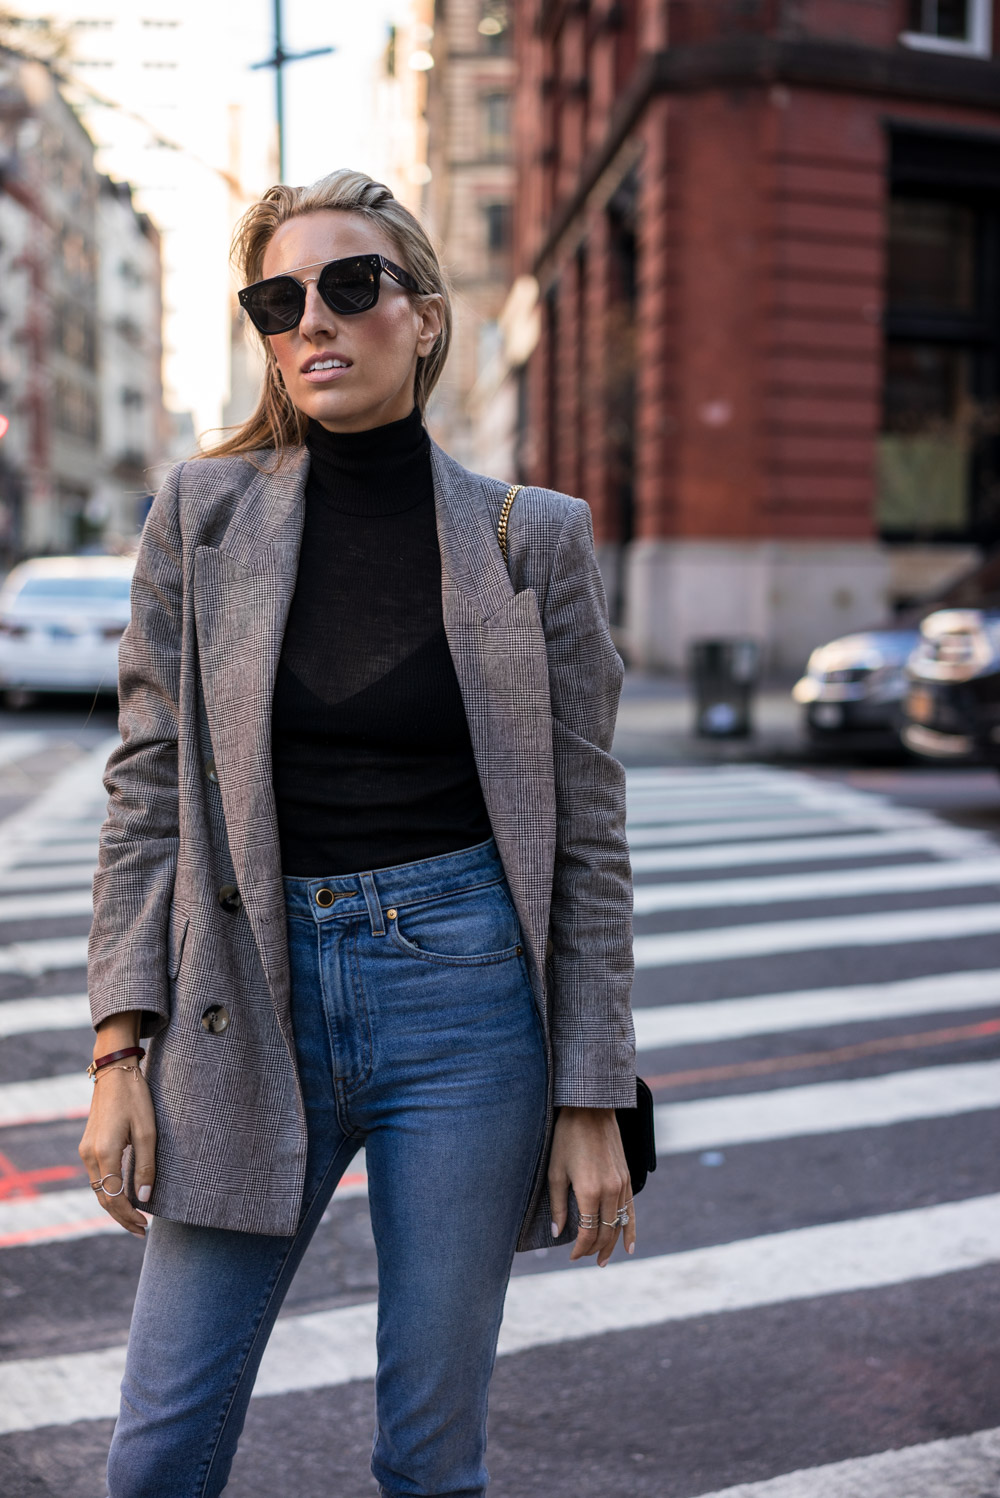 Celine Sunglasses, Khaite jeans, Fall must haves, Grey Check blazer, Red sock boots, High waisted jeans, Velvet Saint Laurent Bag